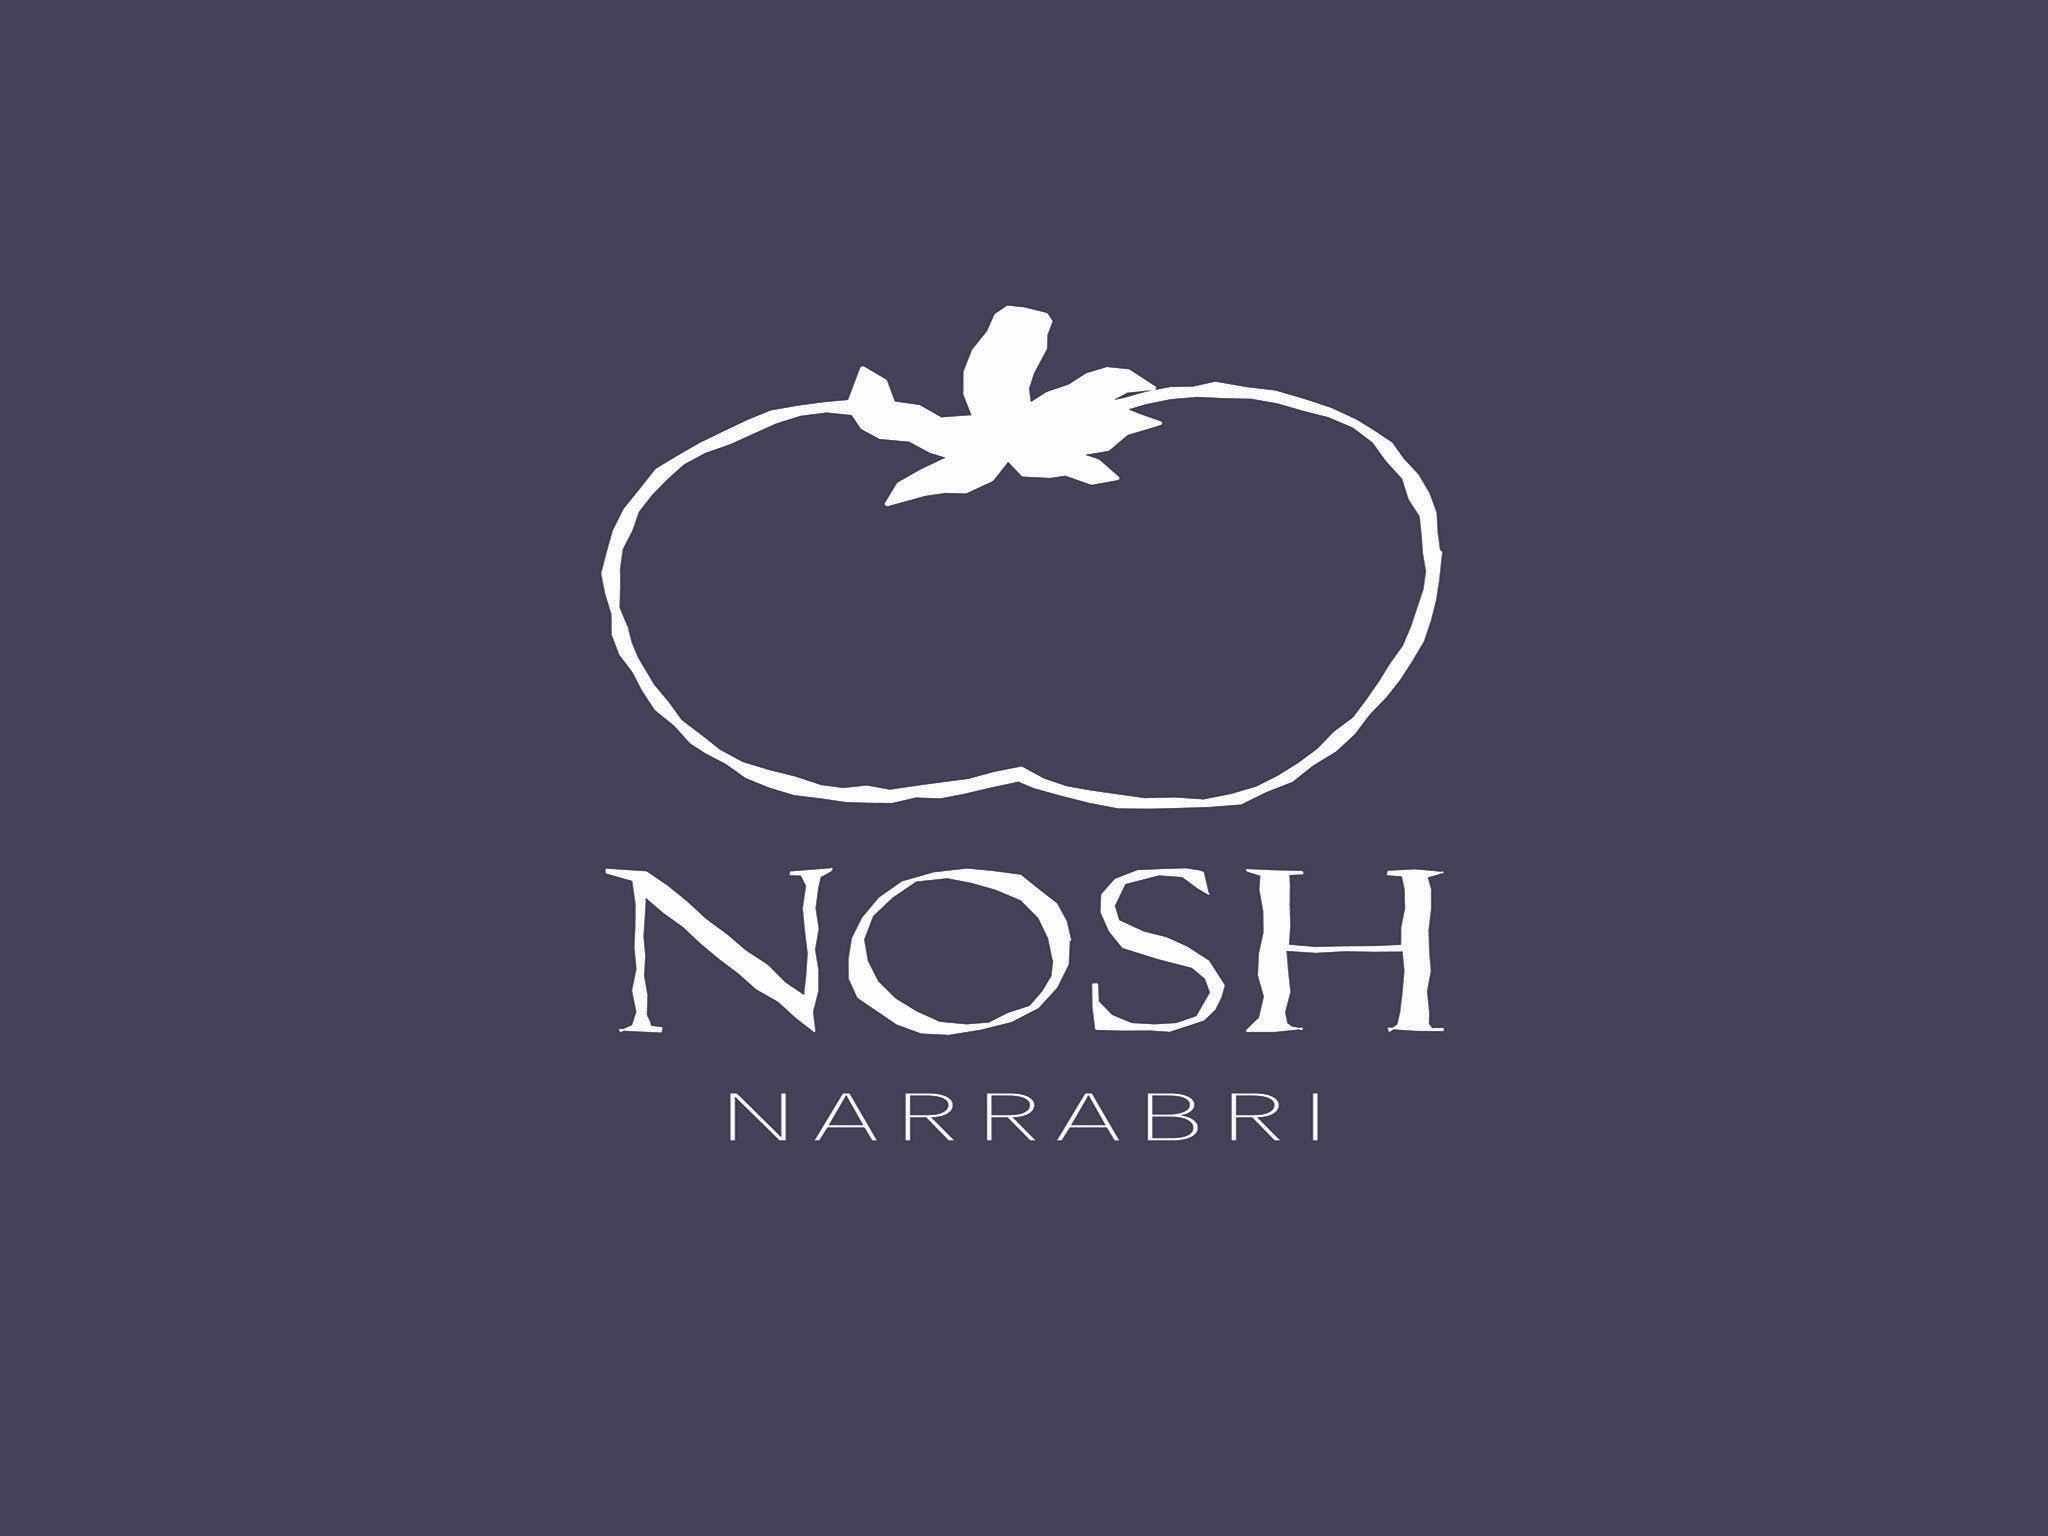 Nosh Narrabri - ACT Tourism